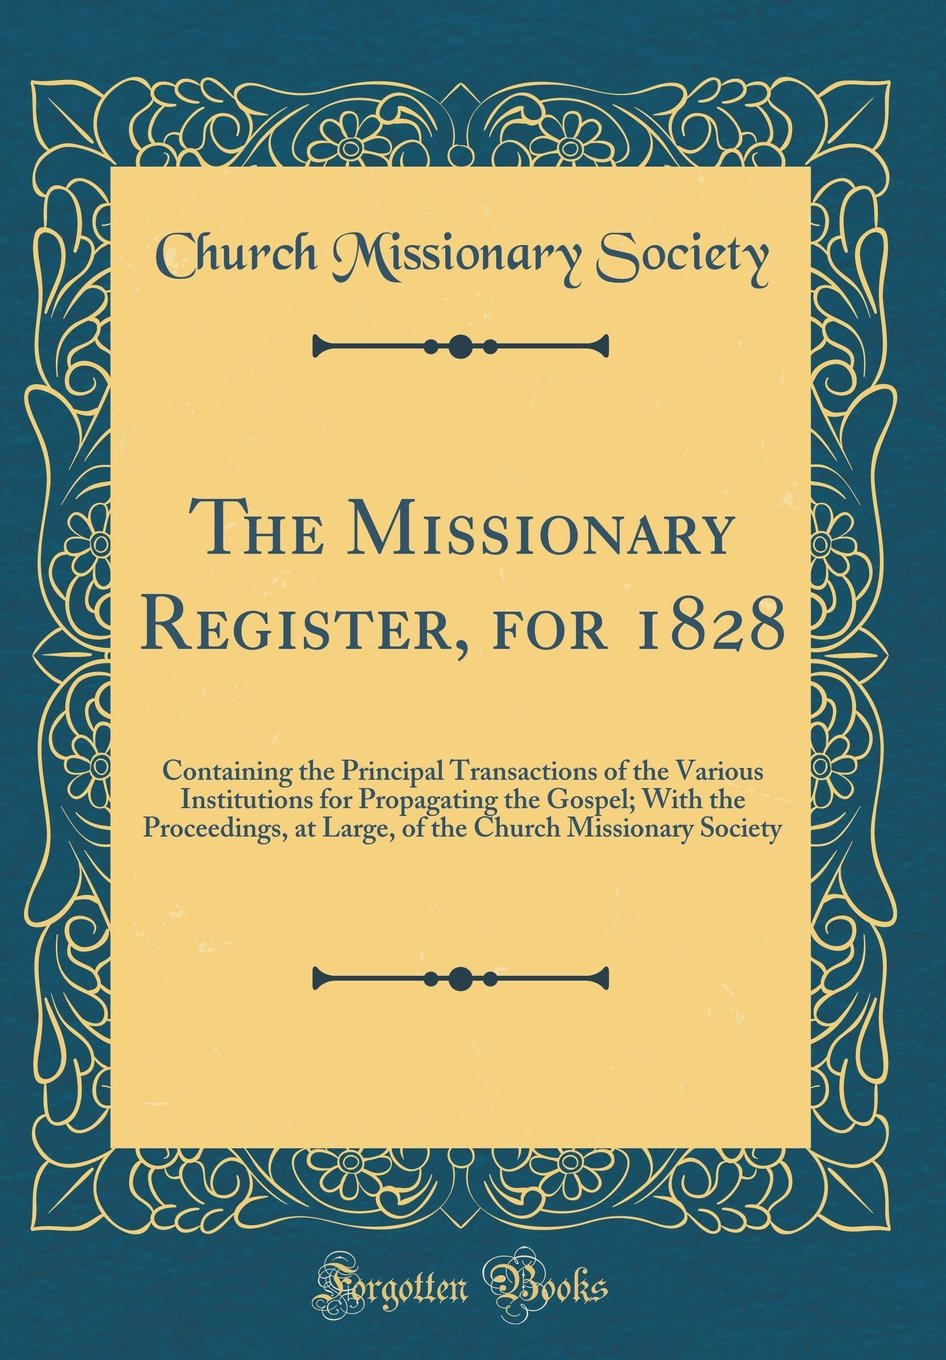 The Missionary Register, for 1828: Containing the Principal Transactions of the Various Institutions for Propagating the Gospel; With the Proceedings, ... Church Missionary Society (Classic Reprint) PDF